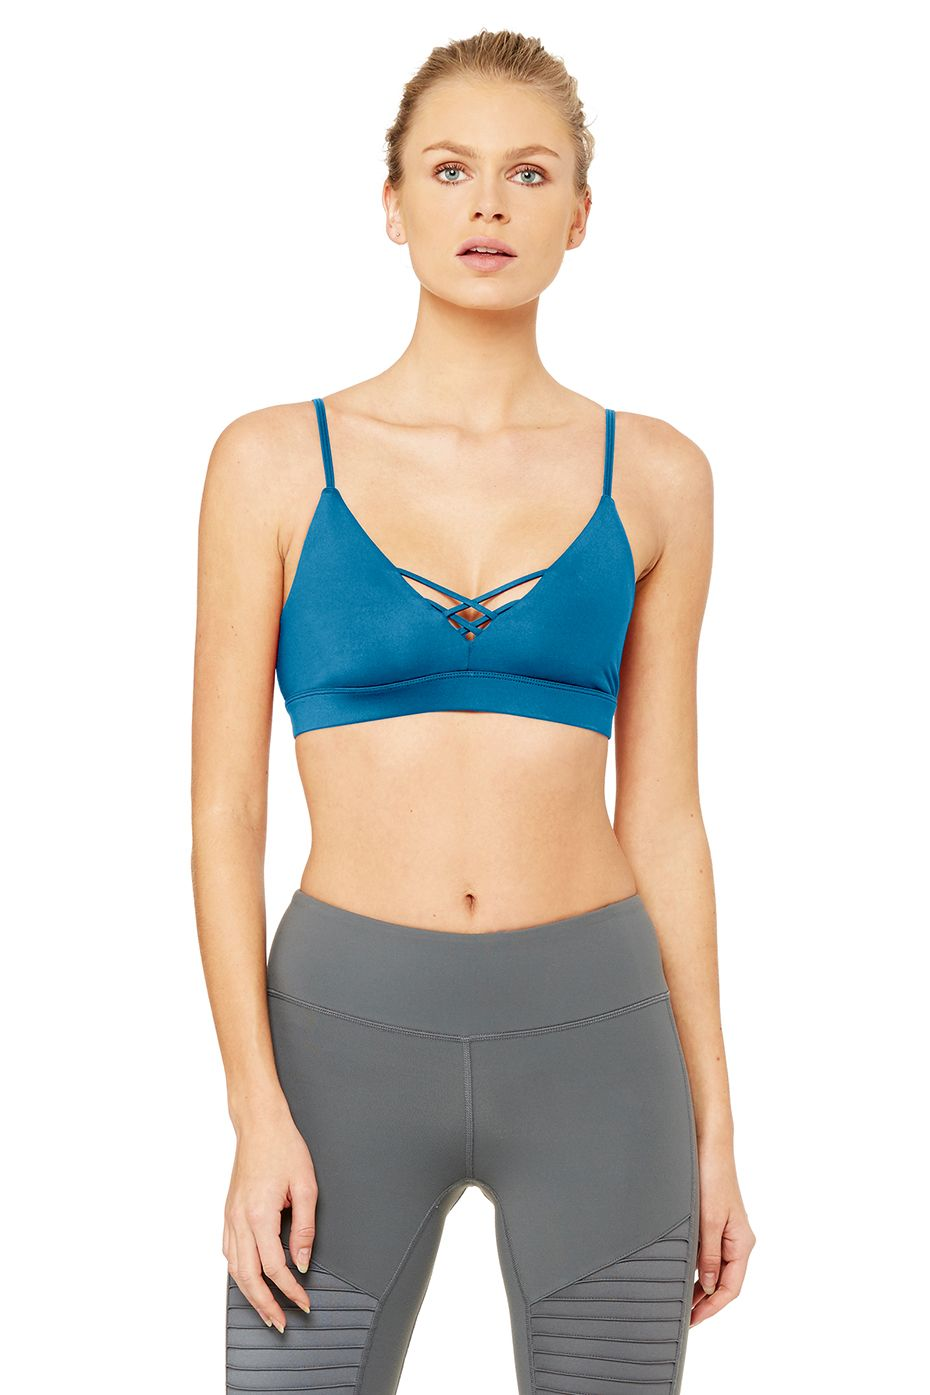 Alo Yoga Interlace Bra - Legion Blue